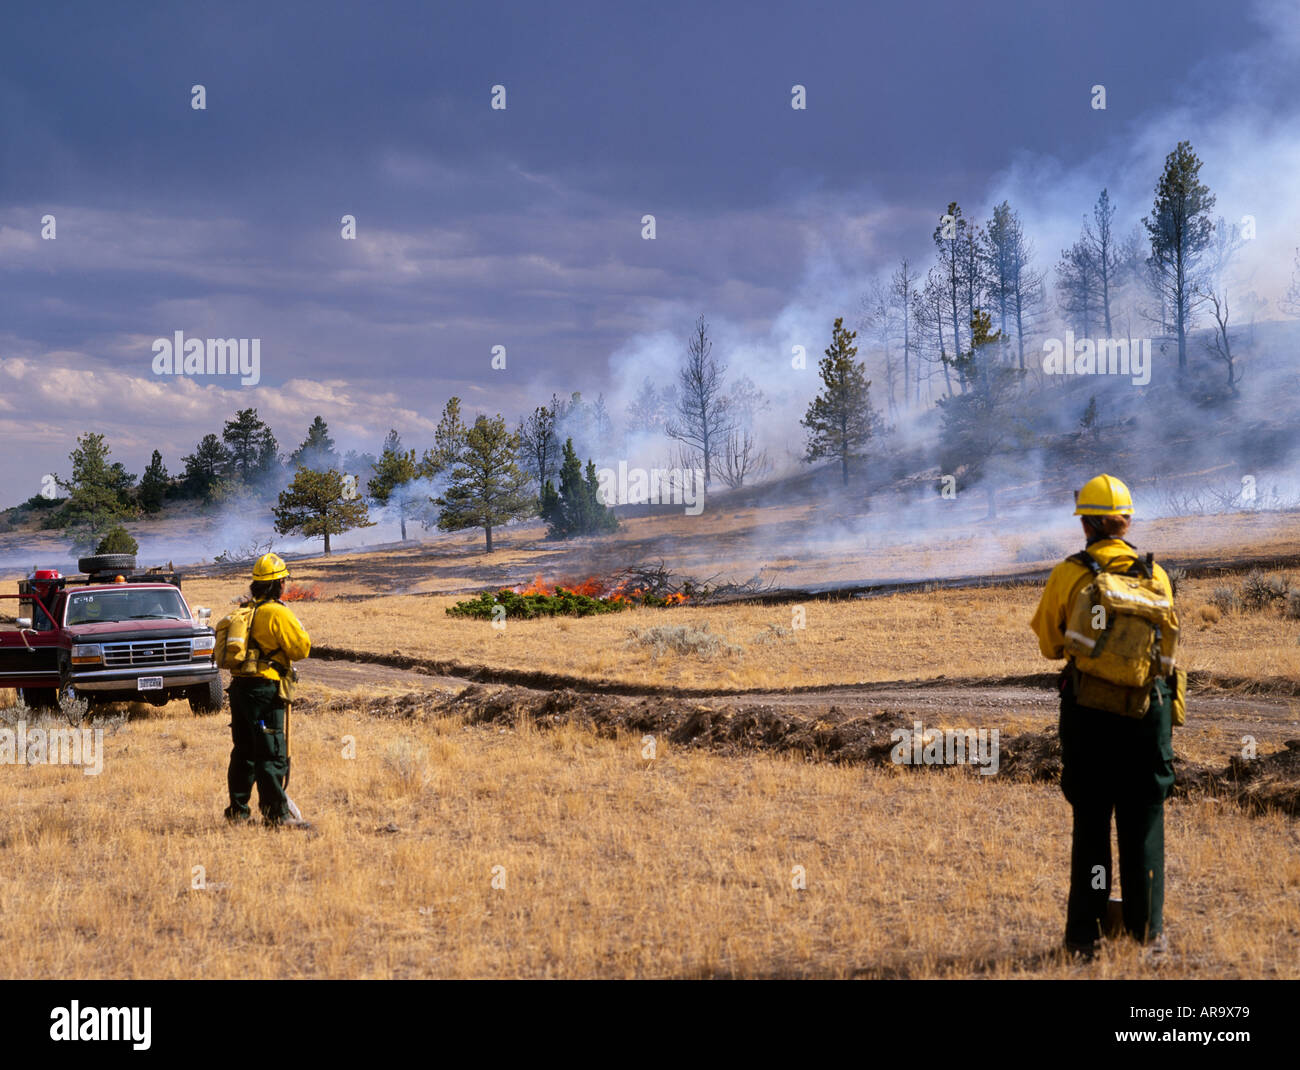 Fire Fighters in line, fighting wildfire, Big Timber, Montana, USA - Stock Image